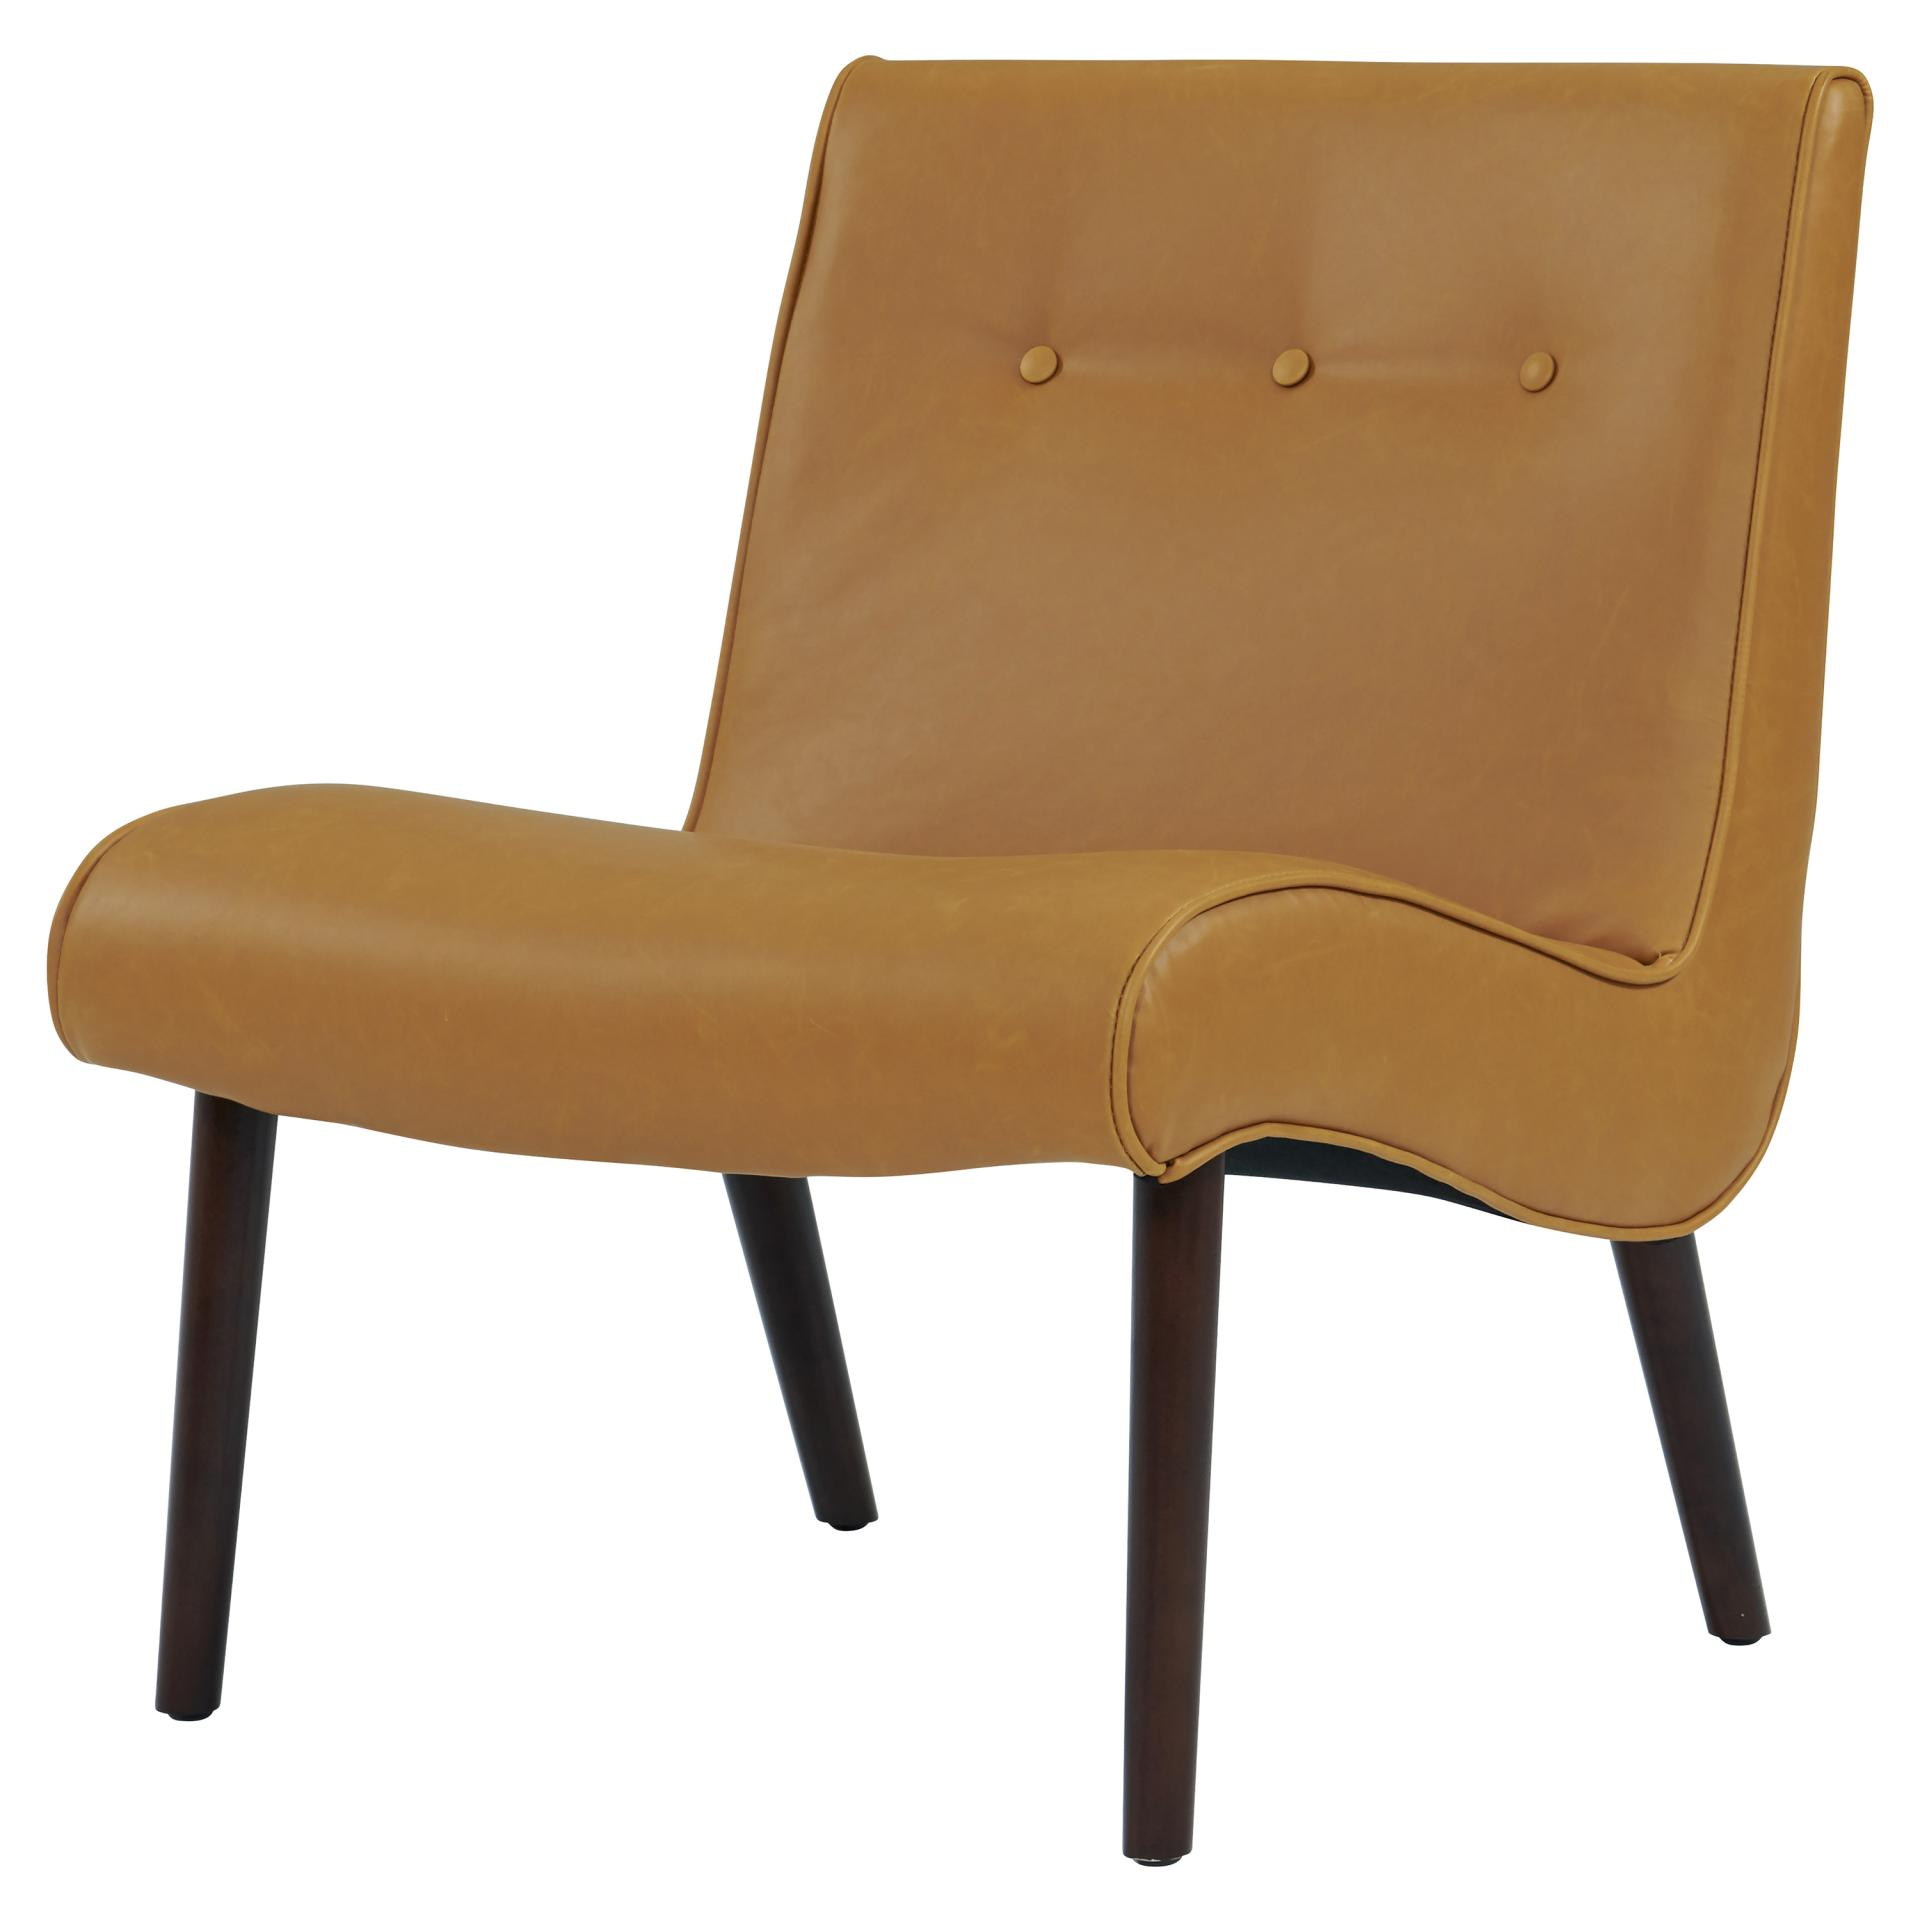 Leather Accent Chairs Metal Legs Caramel.353031b V07 Npd Home Furniture Wholesale Lifestyle Furnishings